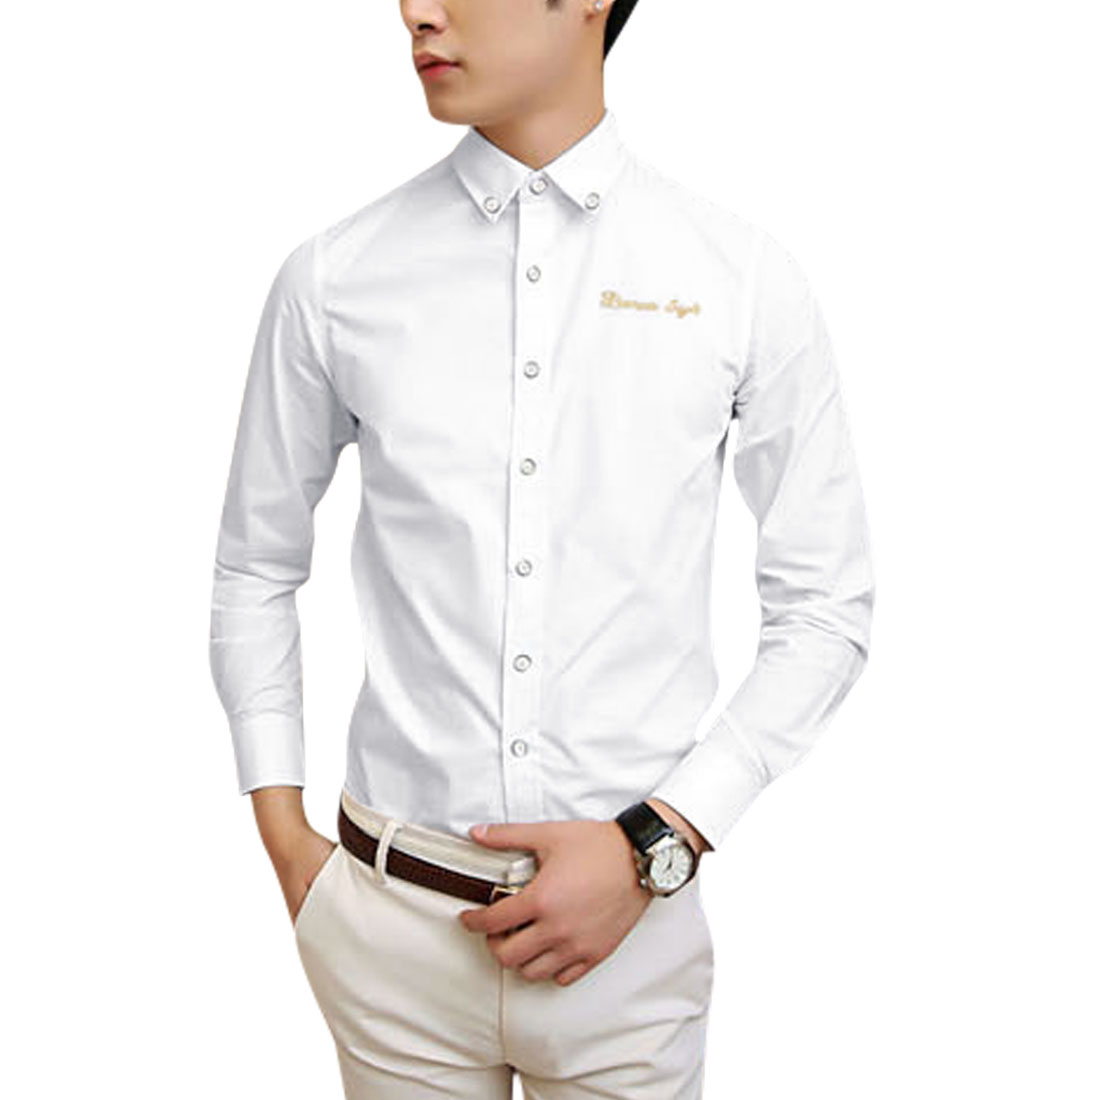 Azzuro Men's Button Cuffs Embroidery Letters Detail Casual Shirt White (Size M / 40��